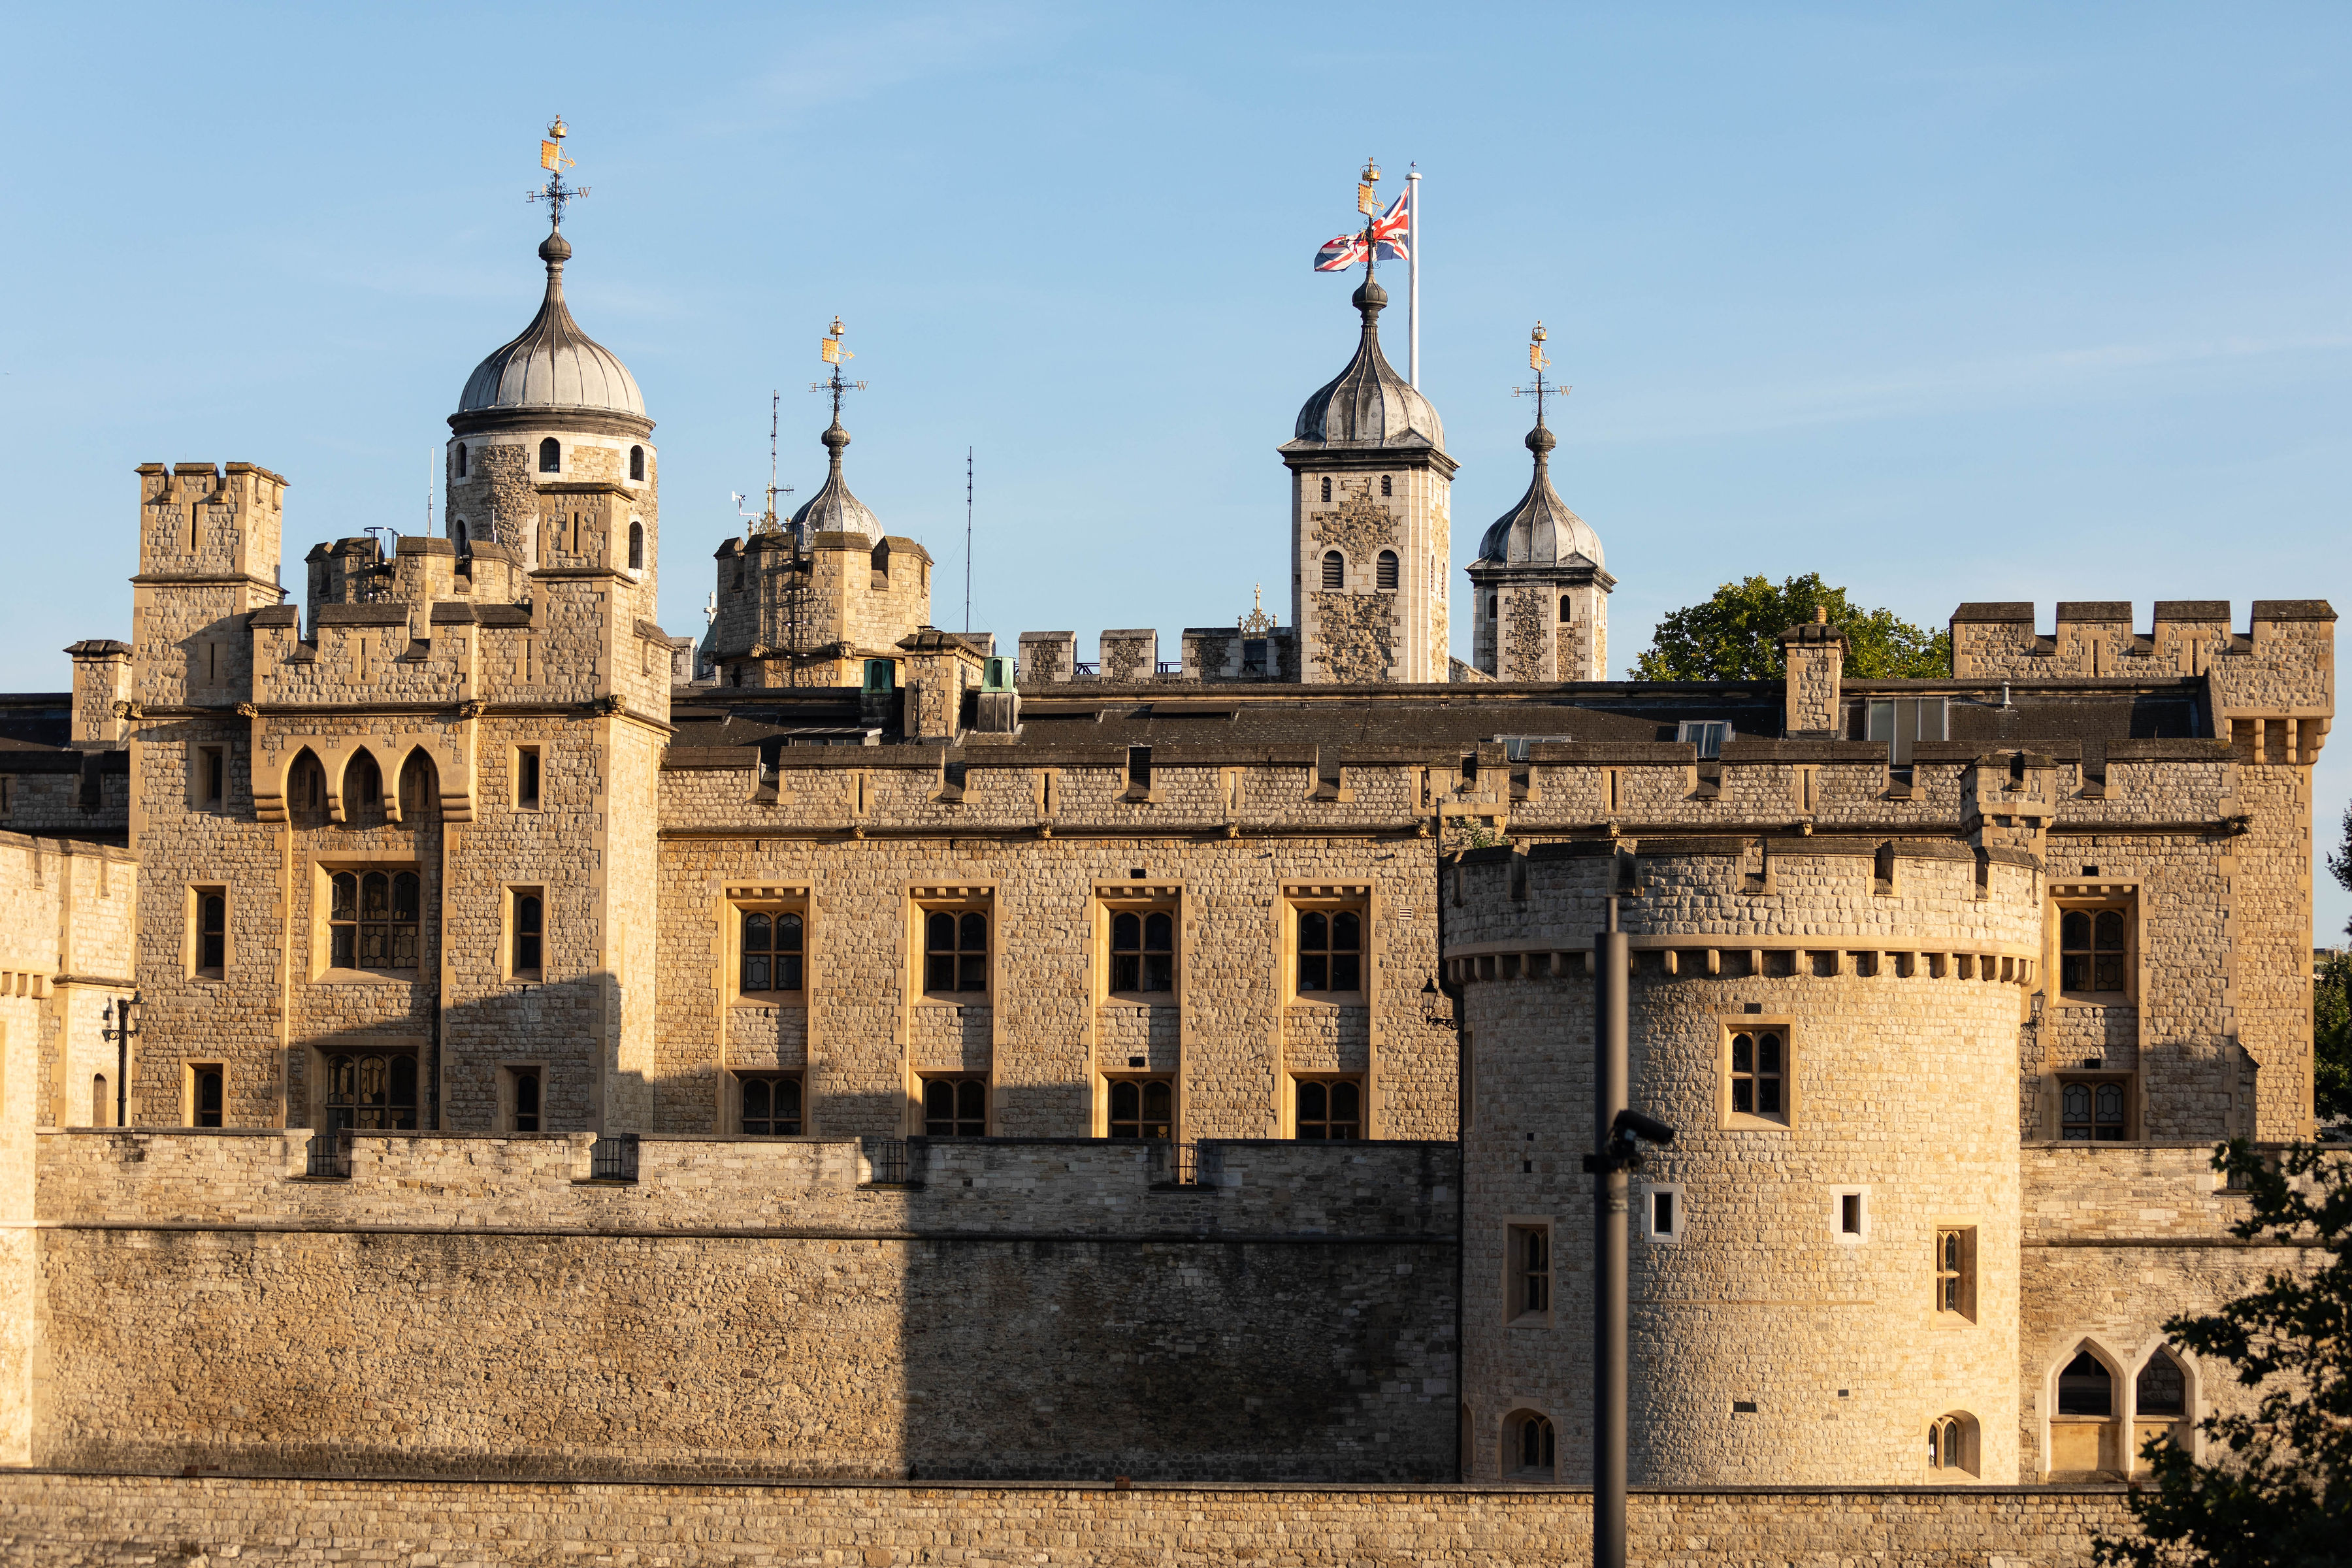 The Tower of London London City Guide the Official Travel Guide of London, England